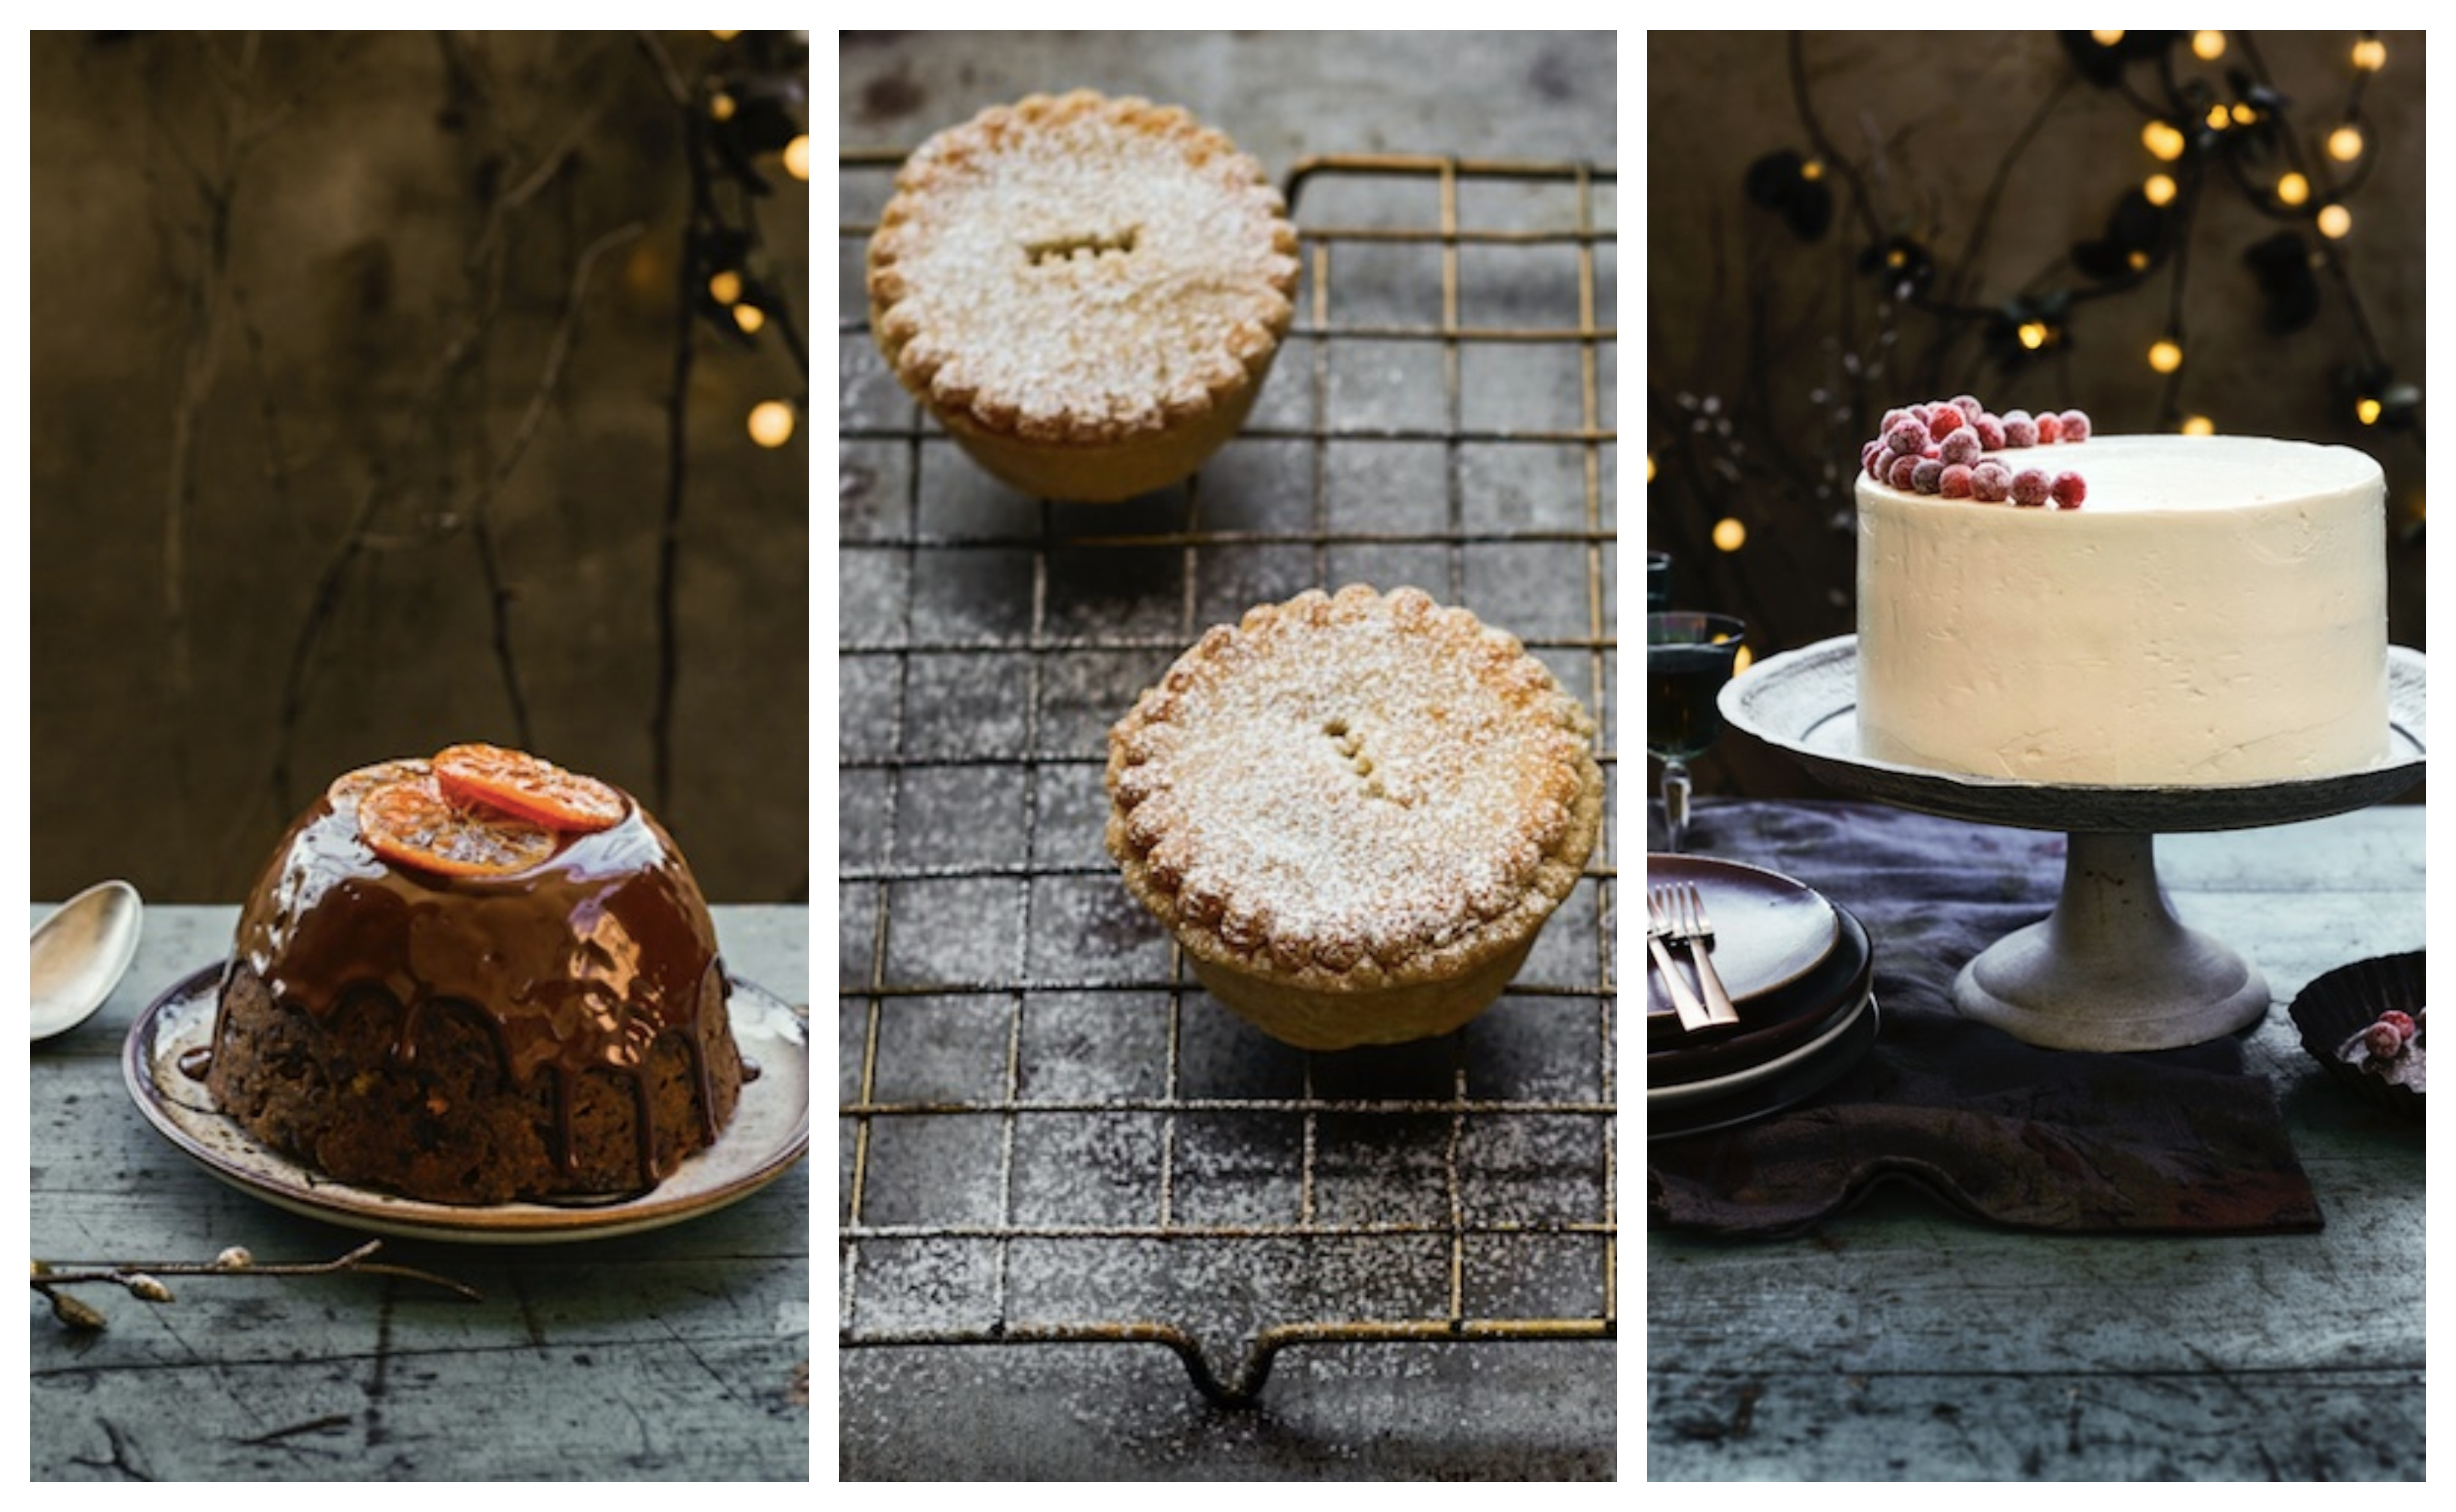 Recipes and images courtesy of Waitrose